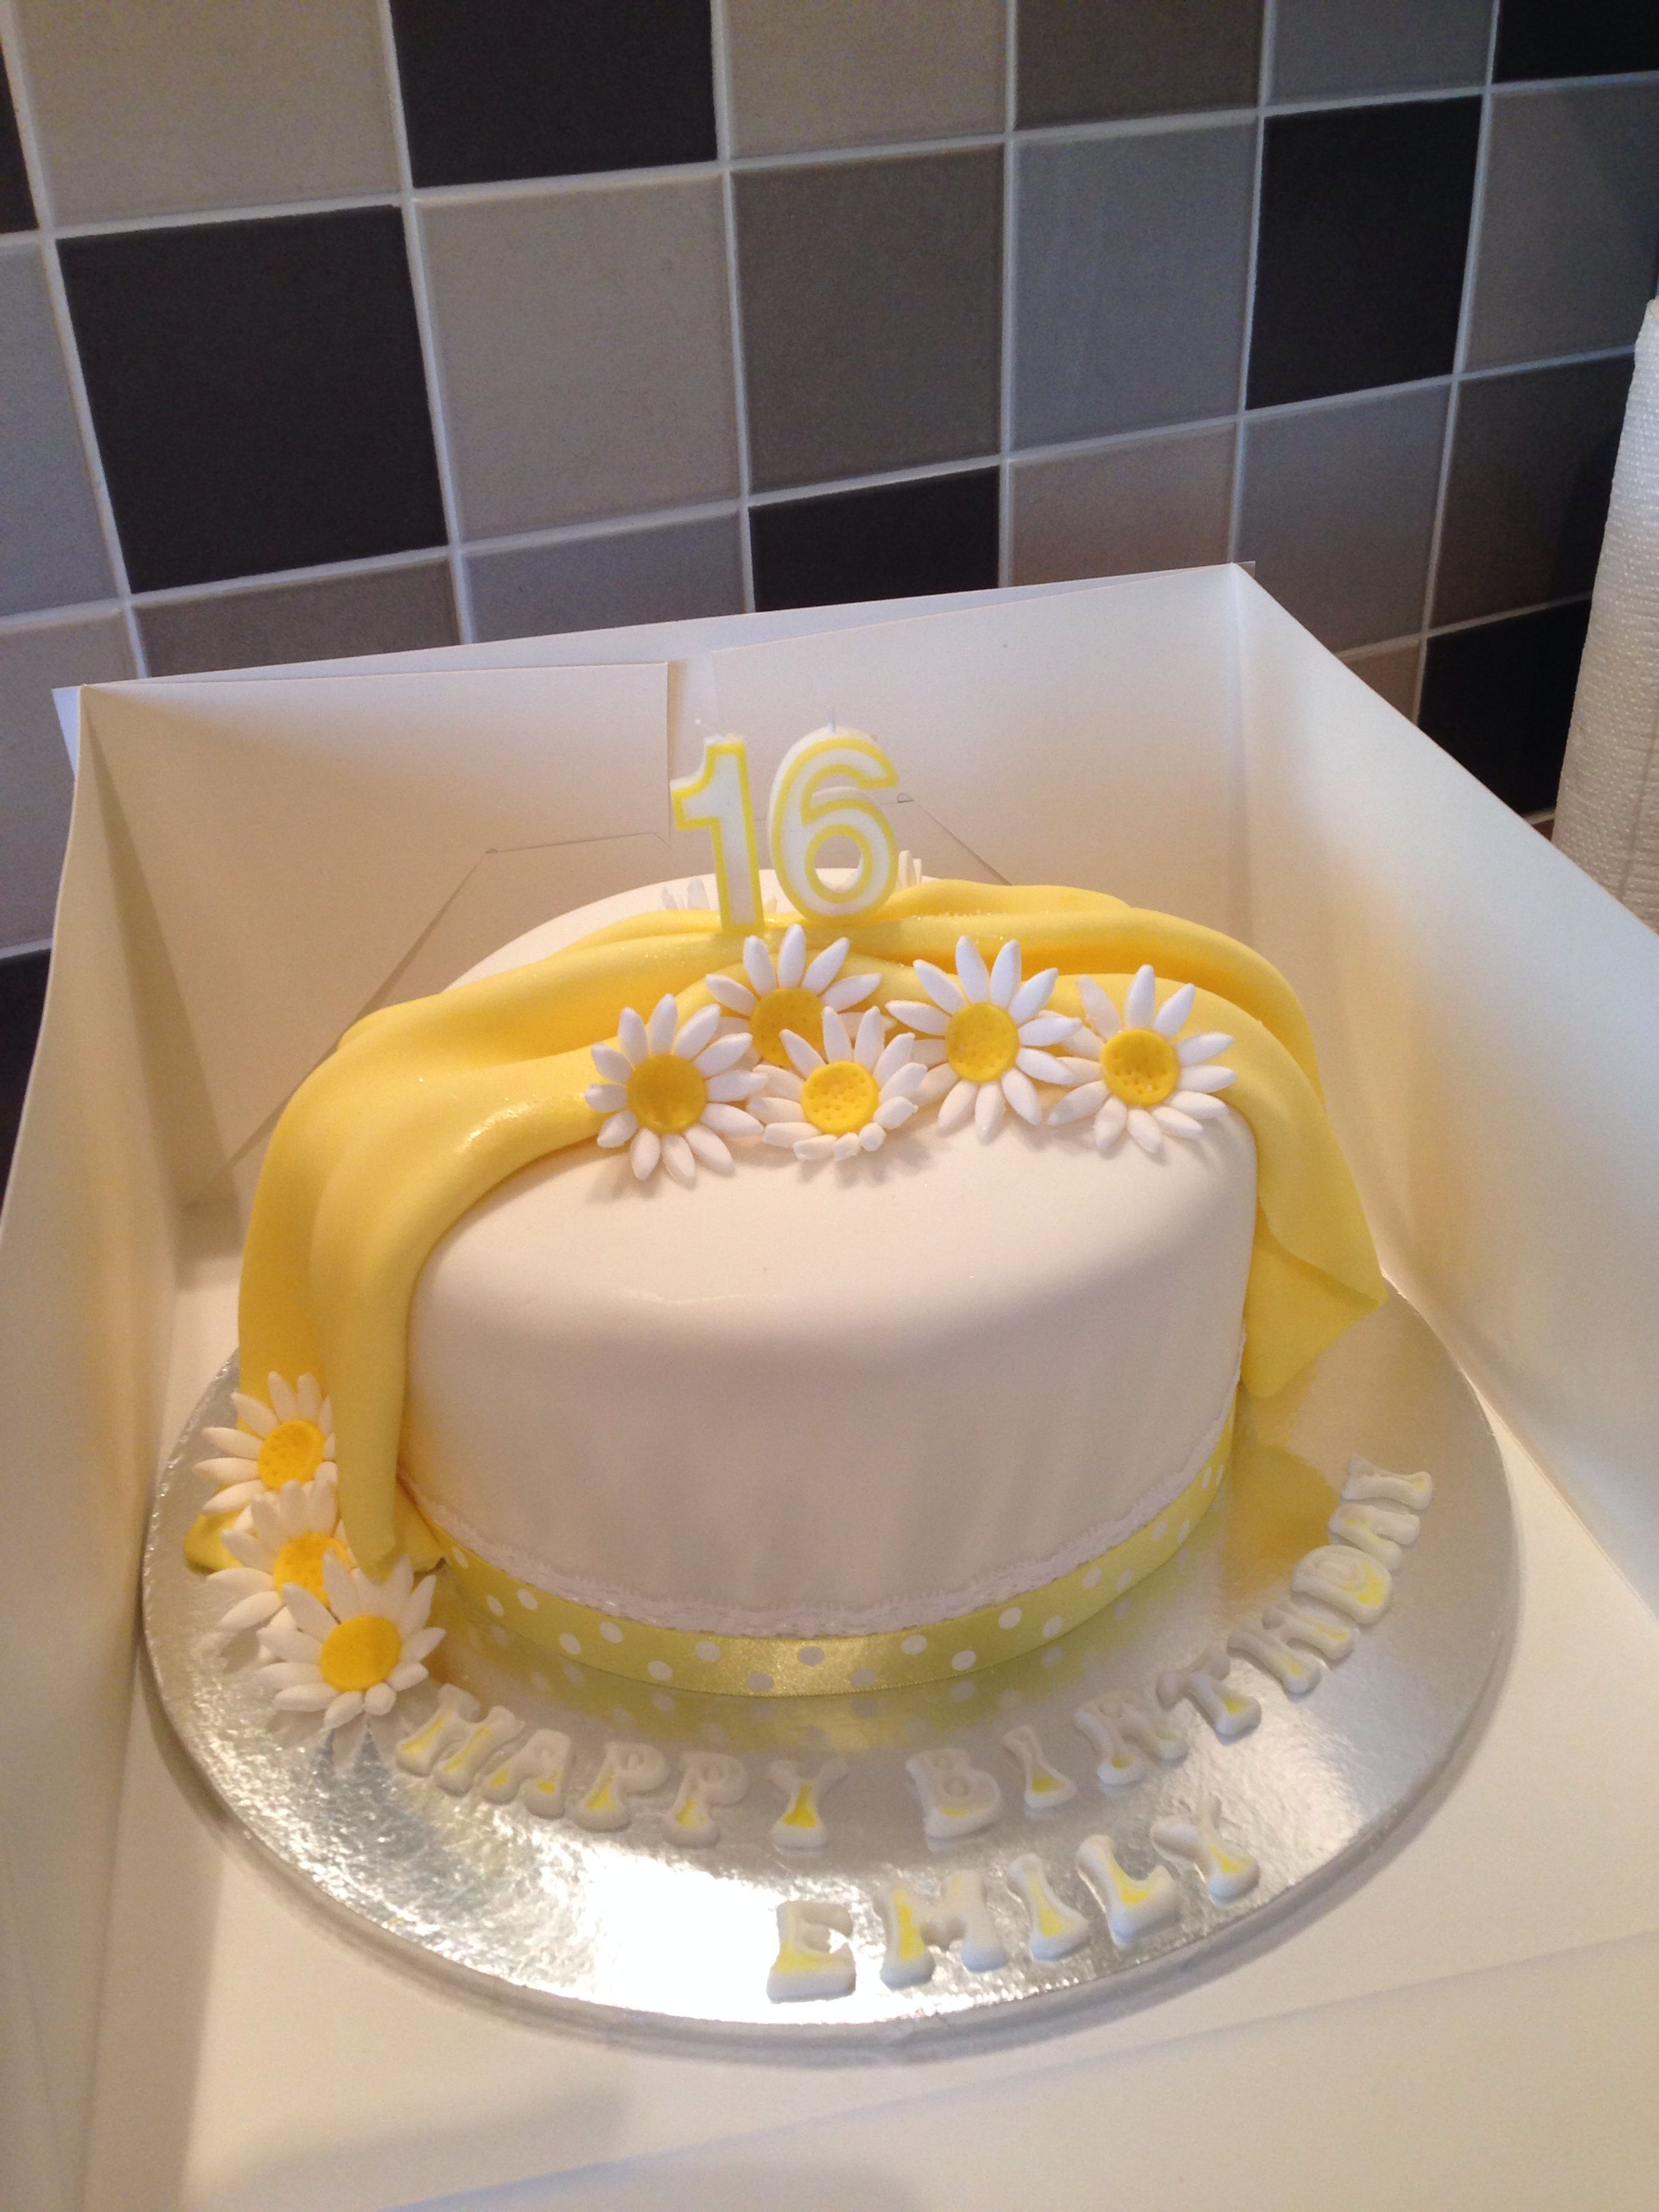 Excellent Daisy Simple Birthday Cake Yellow And White 16Th Birthday With Funny Birthday Cards Online Alyptdamsfinfo